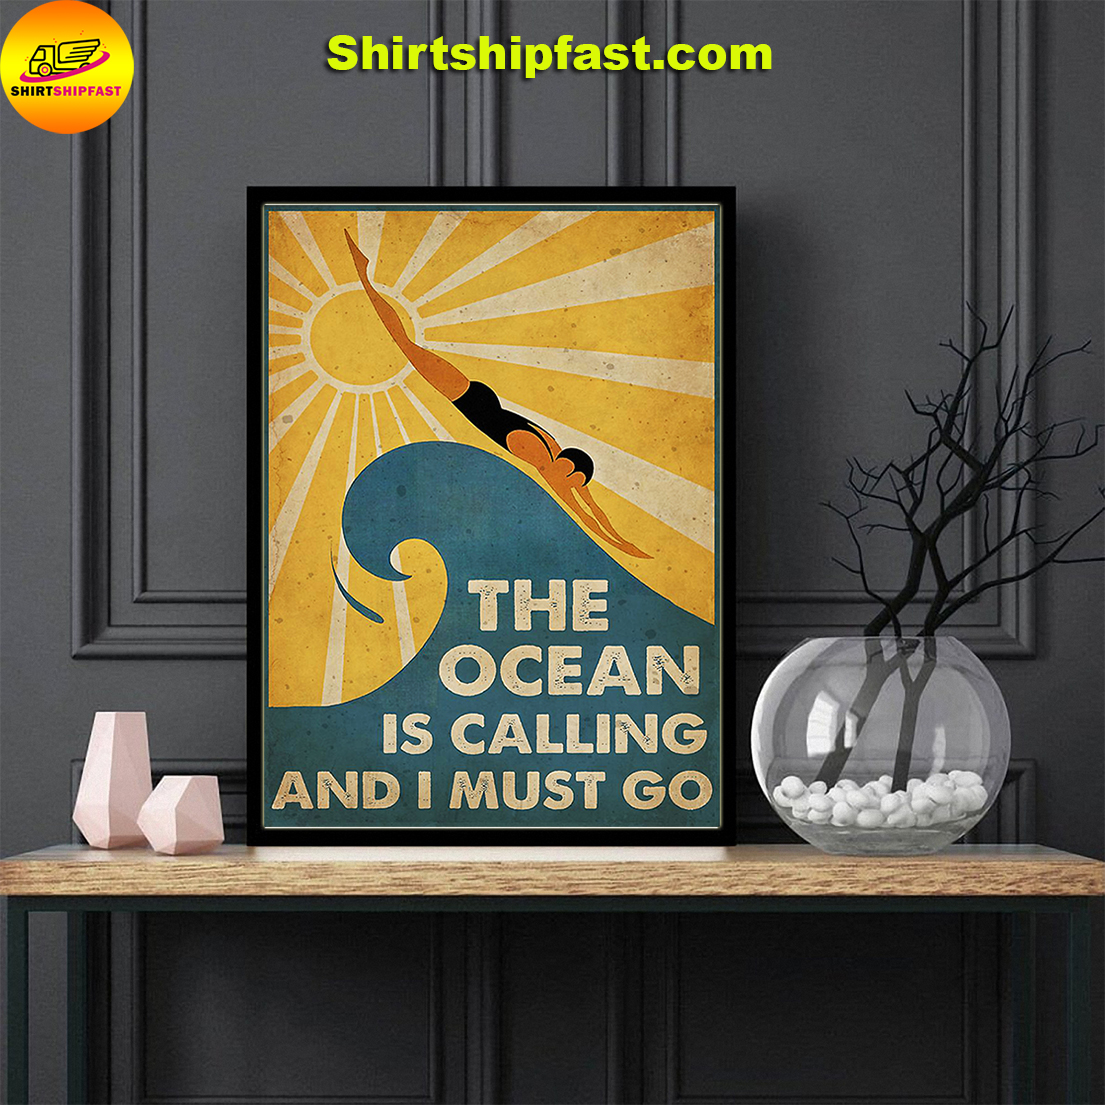 Swimming The ocean is calling and I must go poster - Picture 1